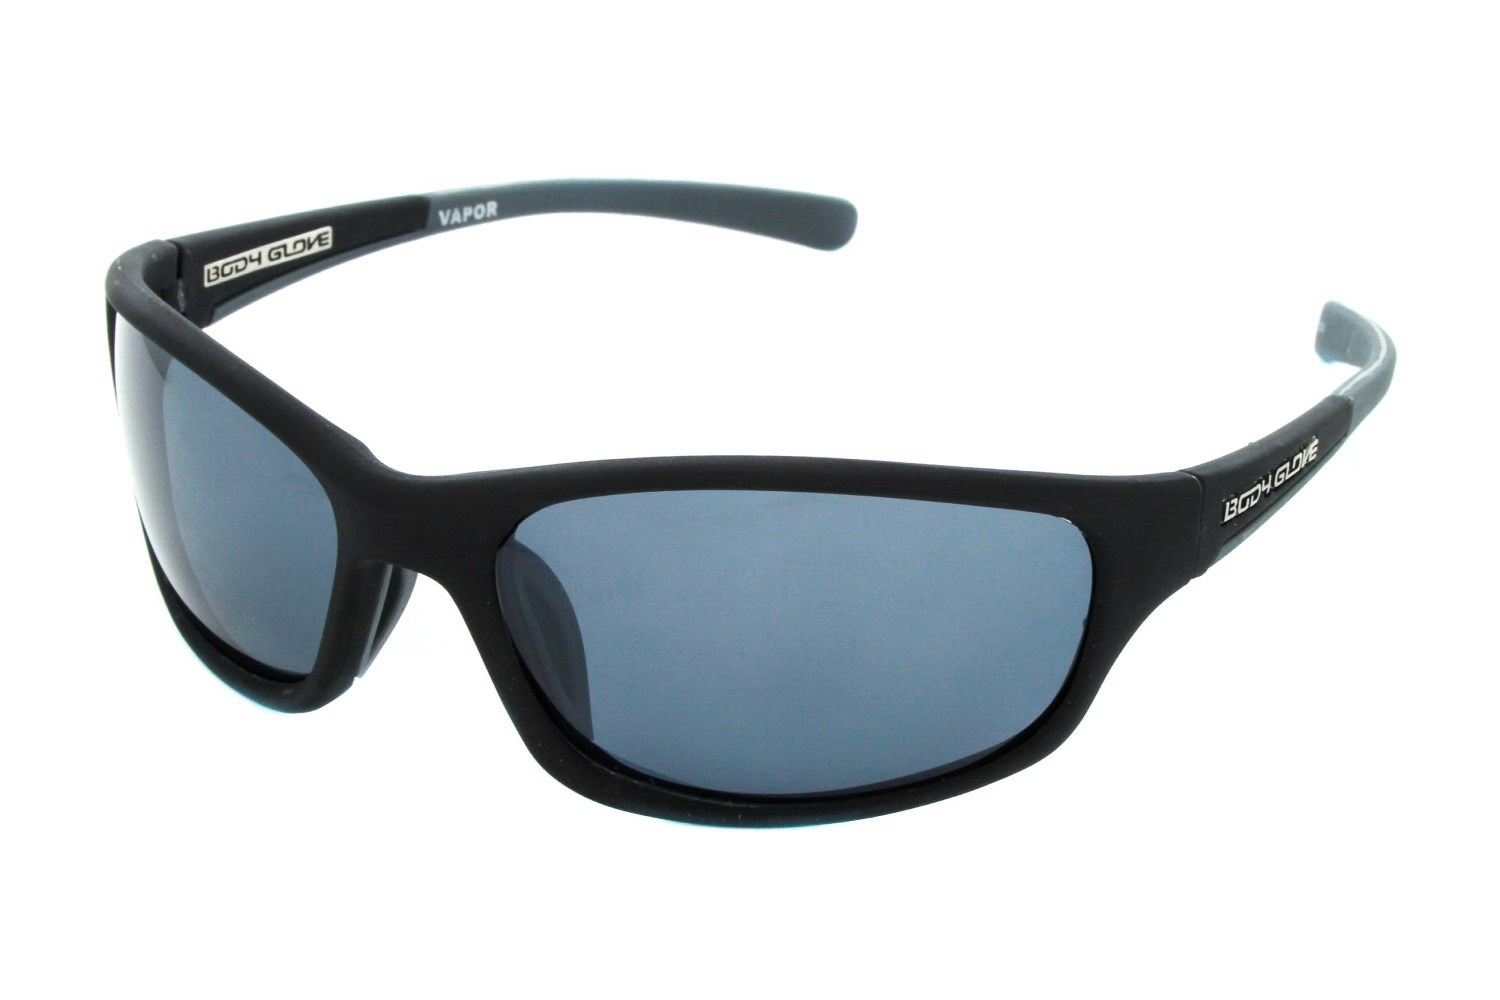 54d3e52722 Sunglasses - Body Glove Eyewear glasses and contact lenses superstore